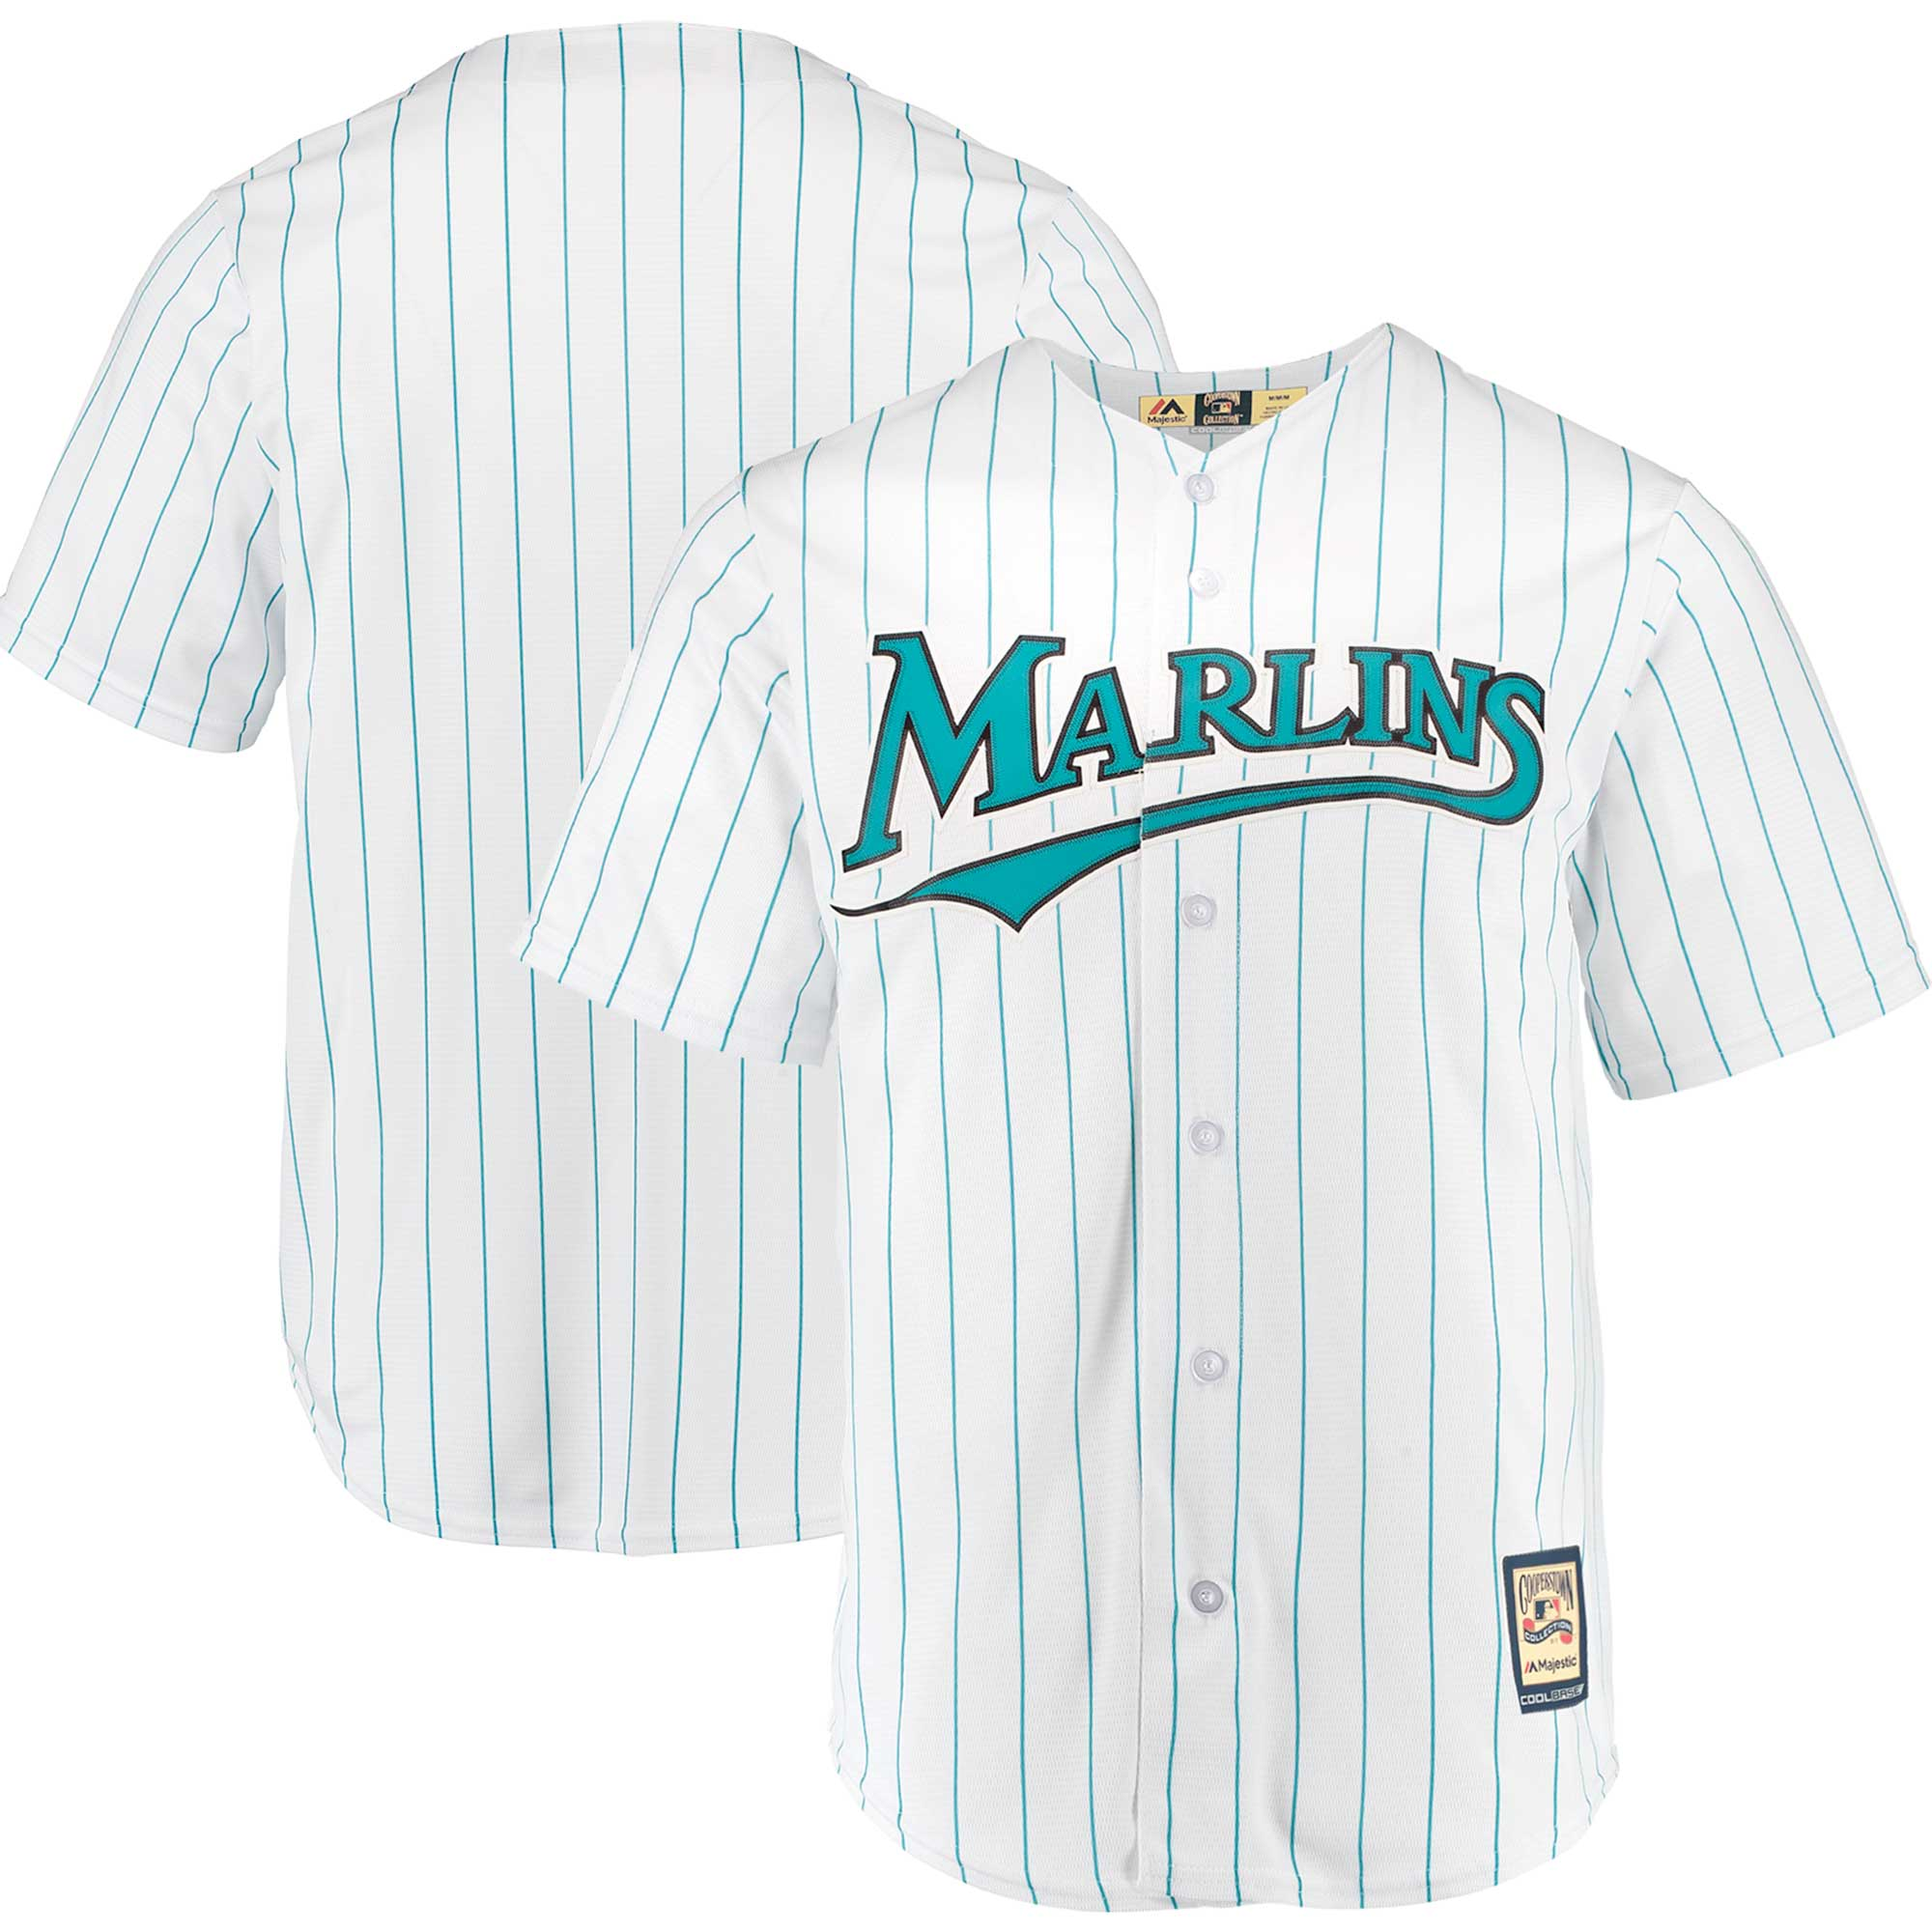 Miami Marlins Majestic Home Cooperstown Collection Team Cool Base Jersey - White/Aqua